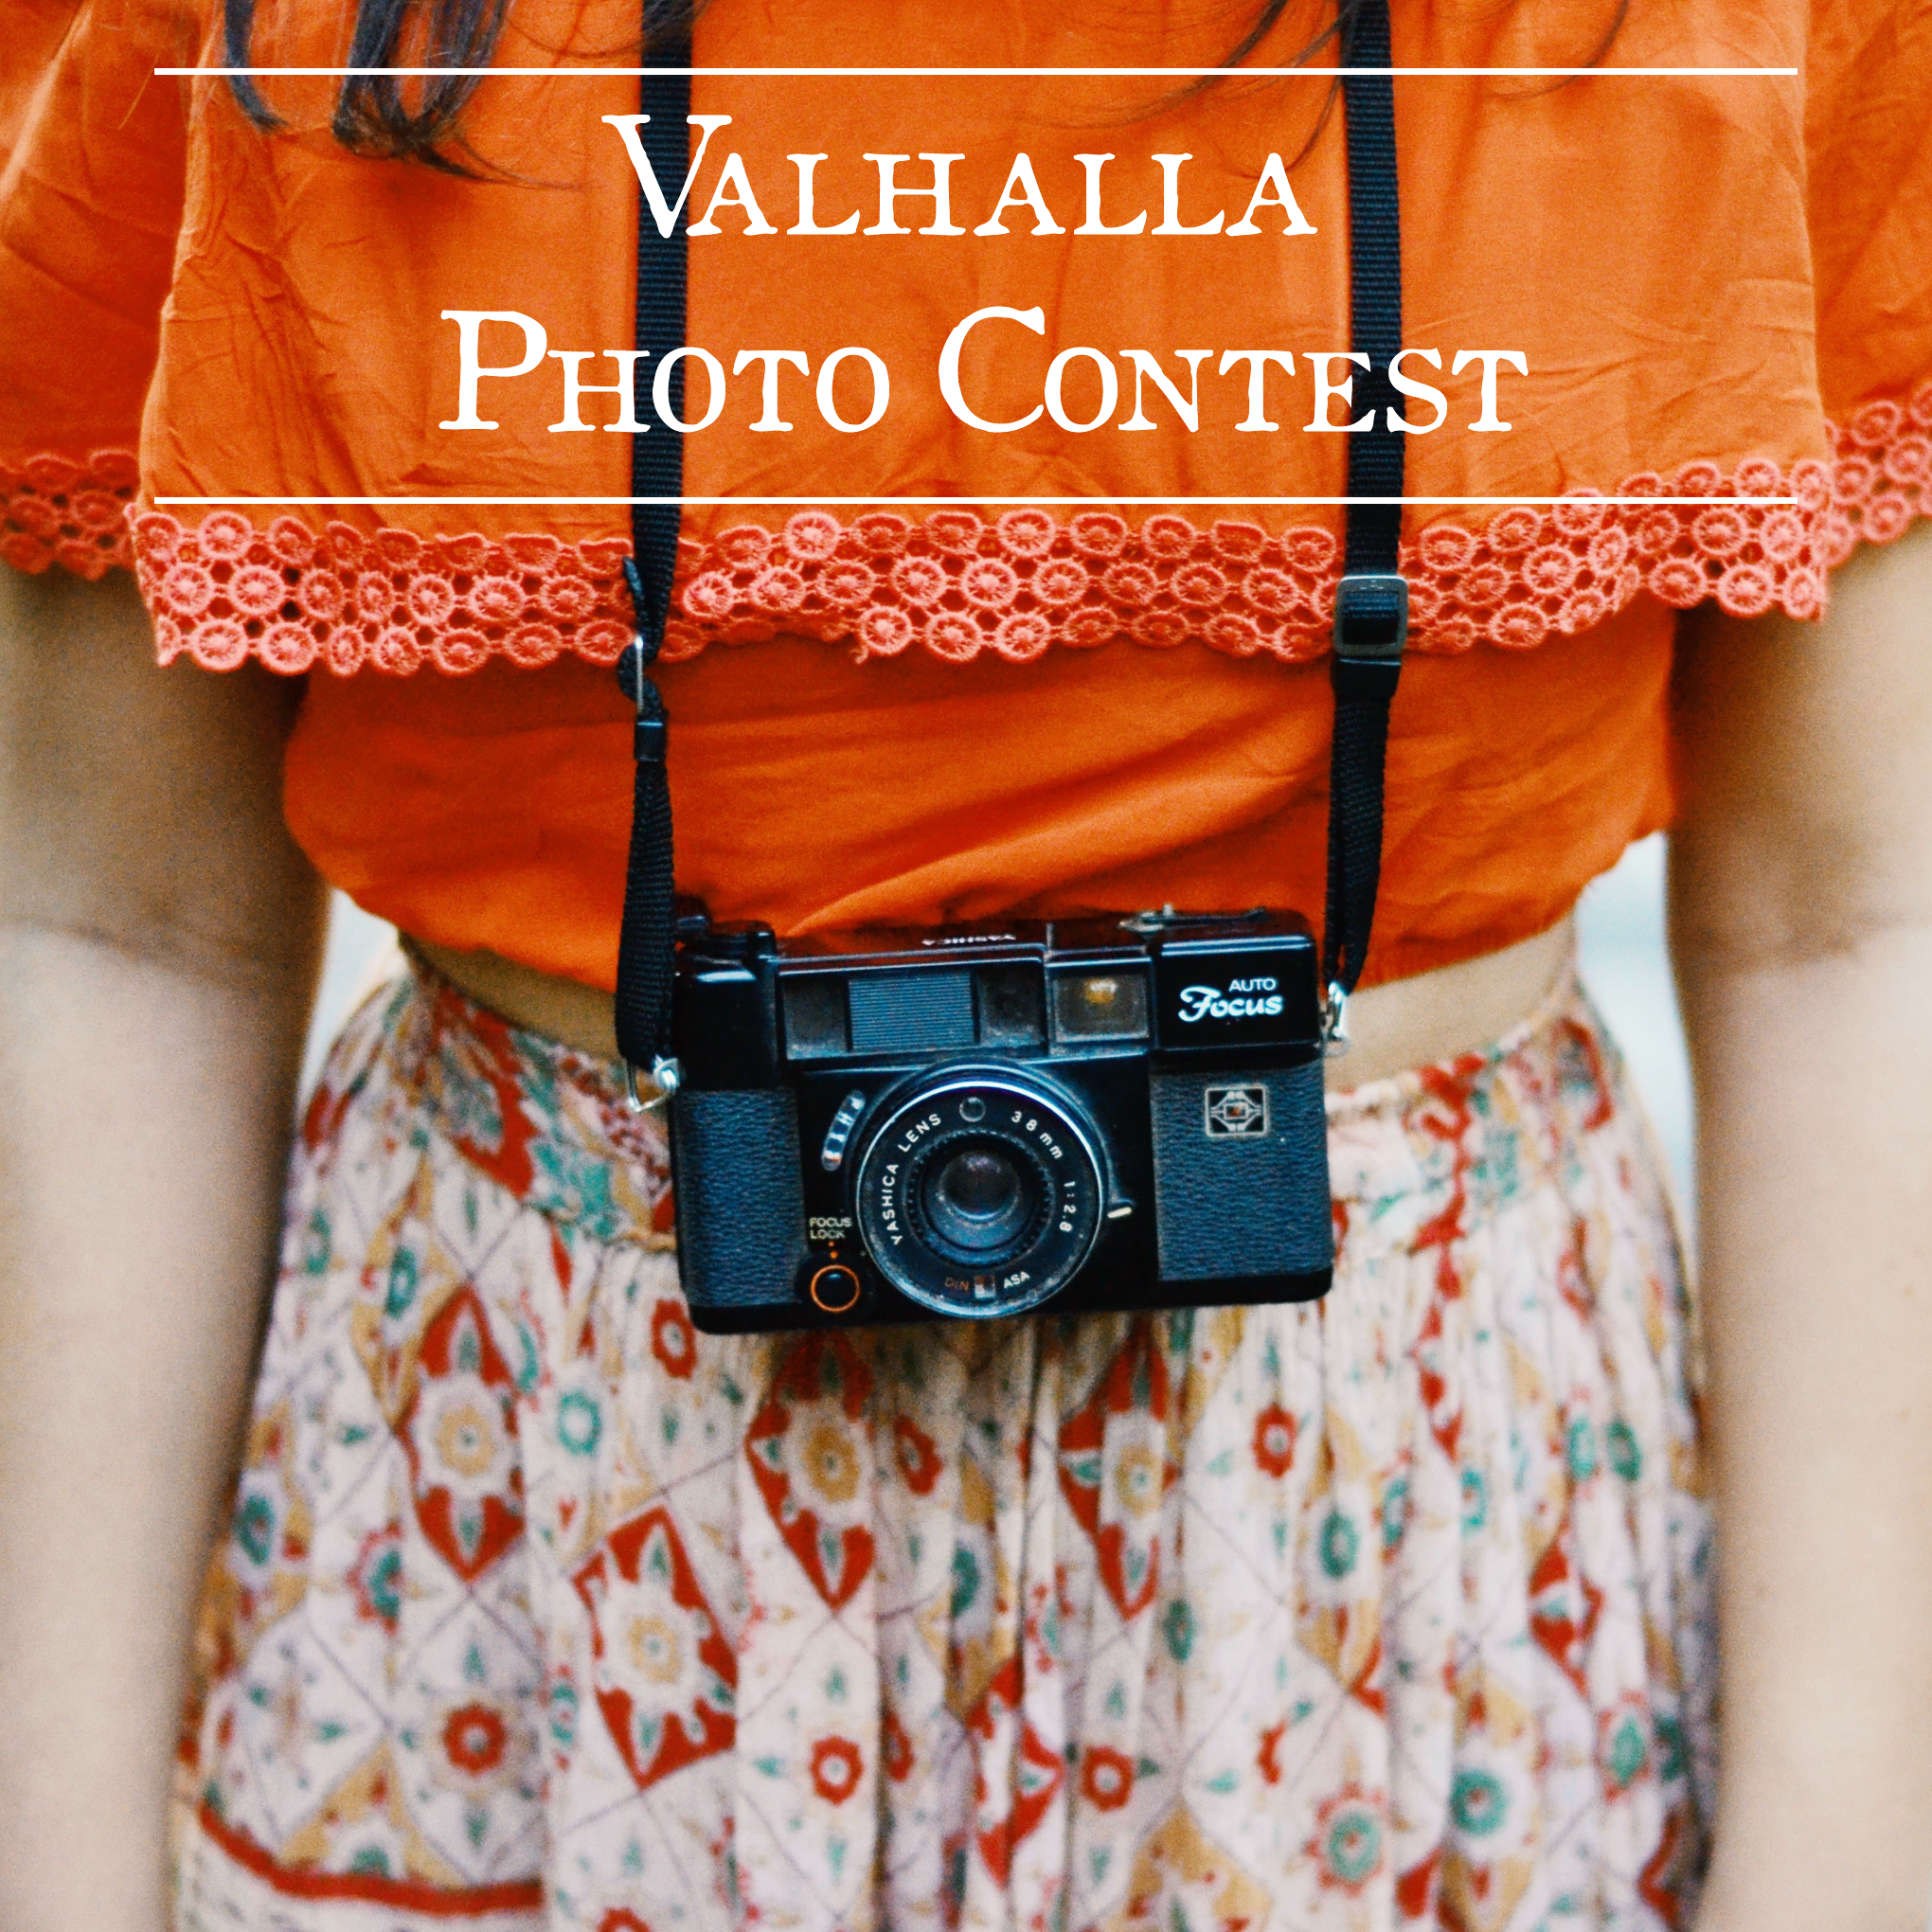 Valhalla Photo Contest